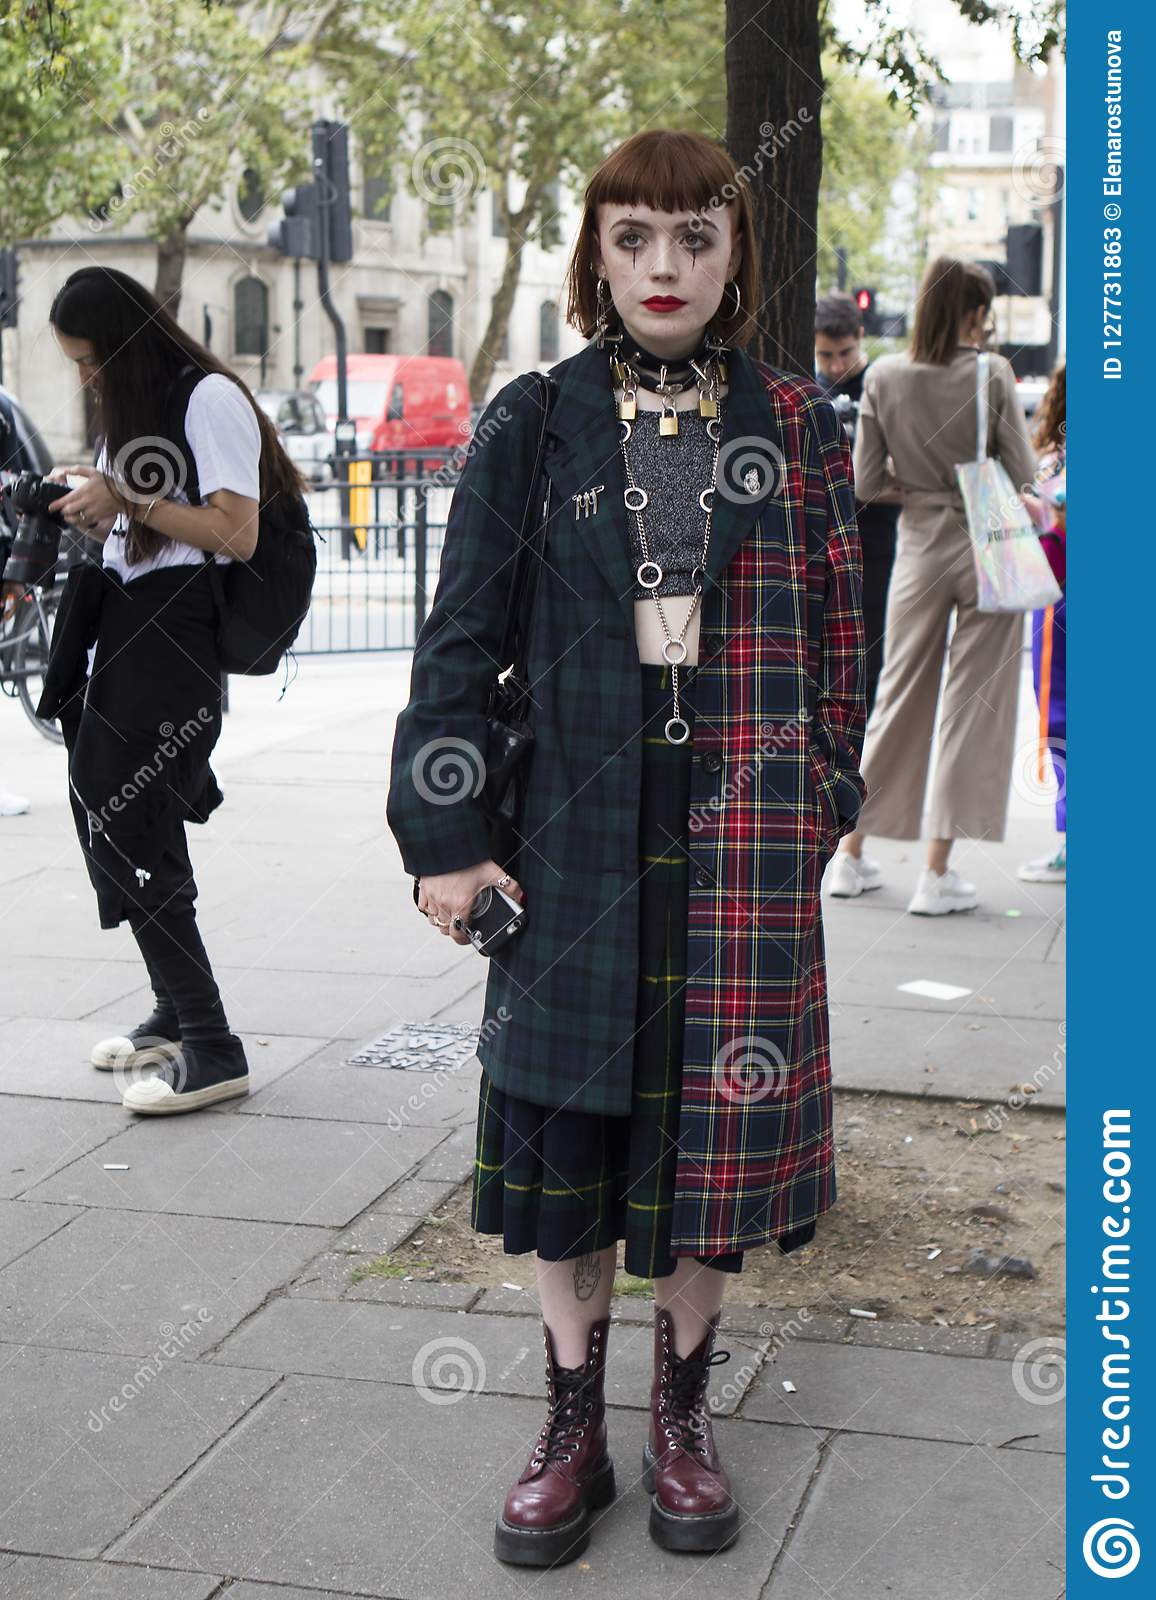 5b2855ab144 People On The Street During The London Fashion Week. Editorial Stock ...